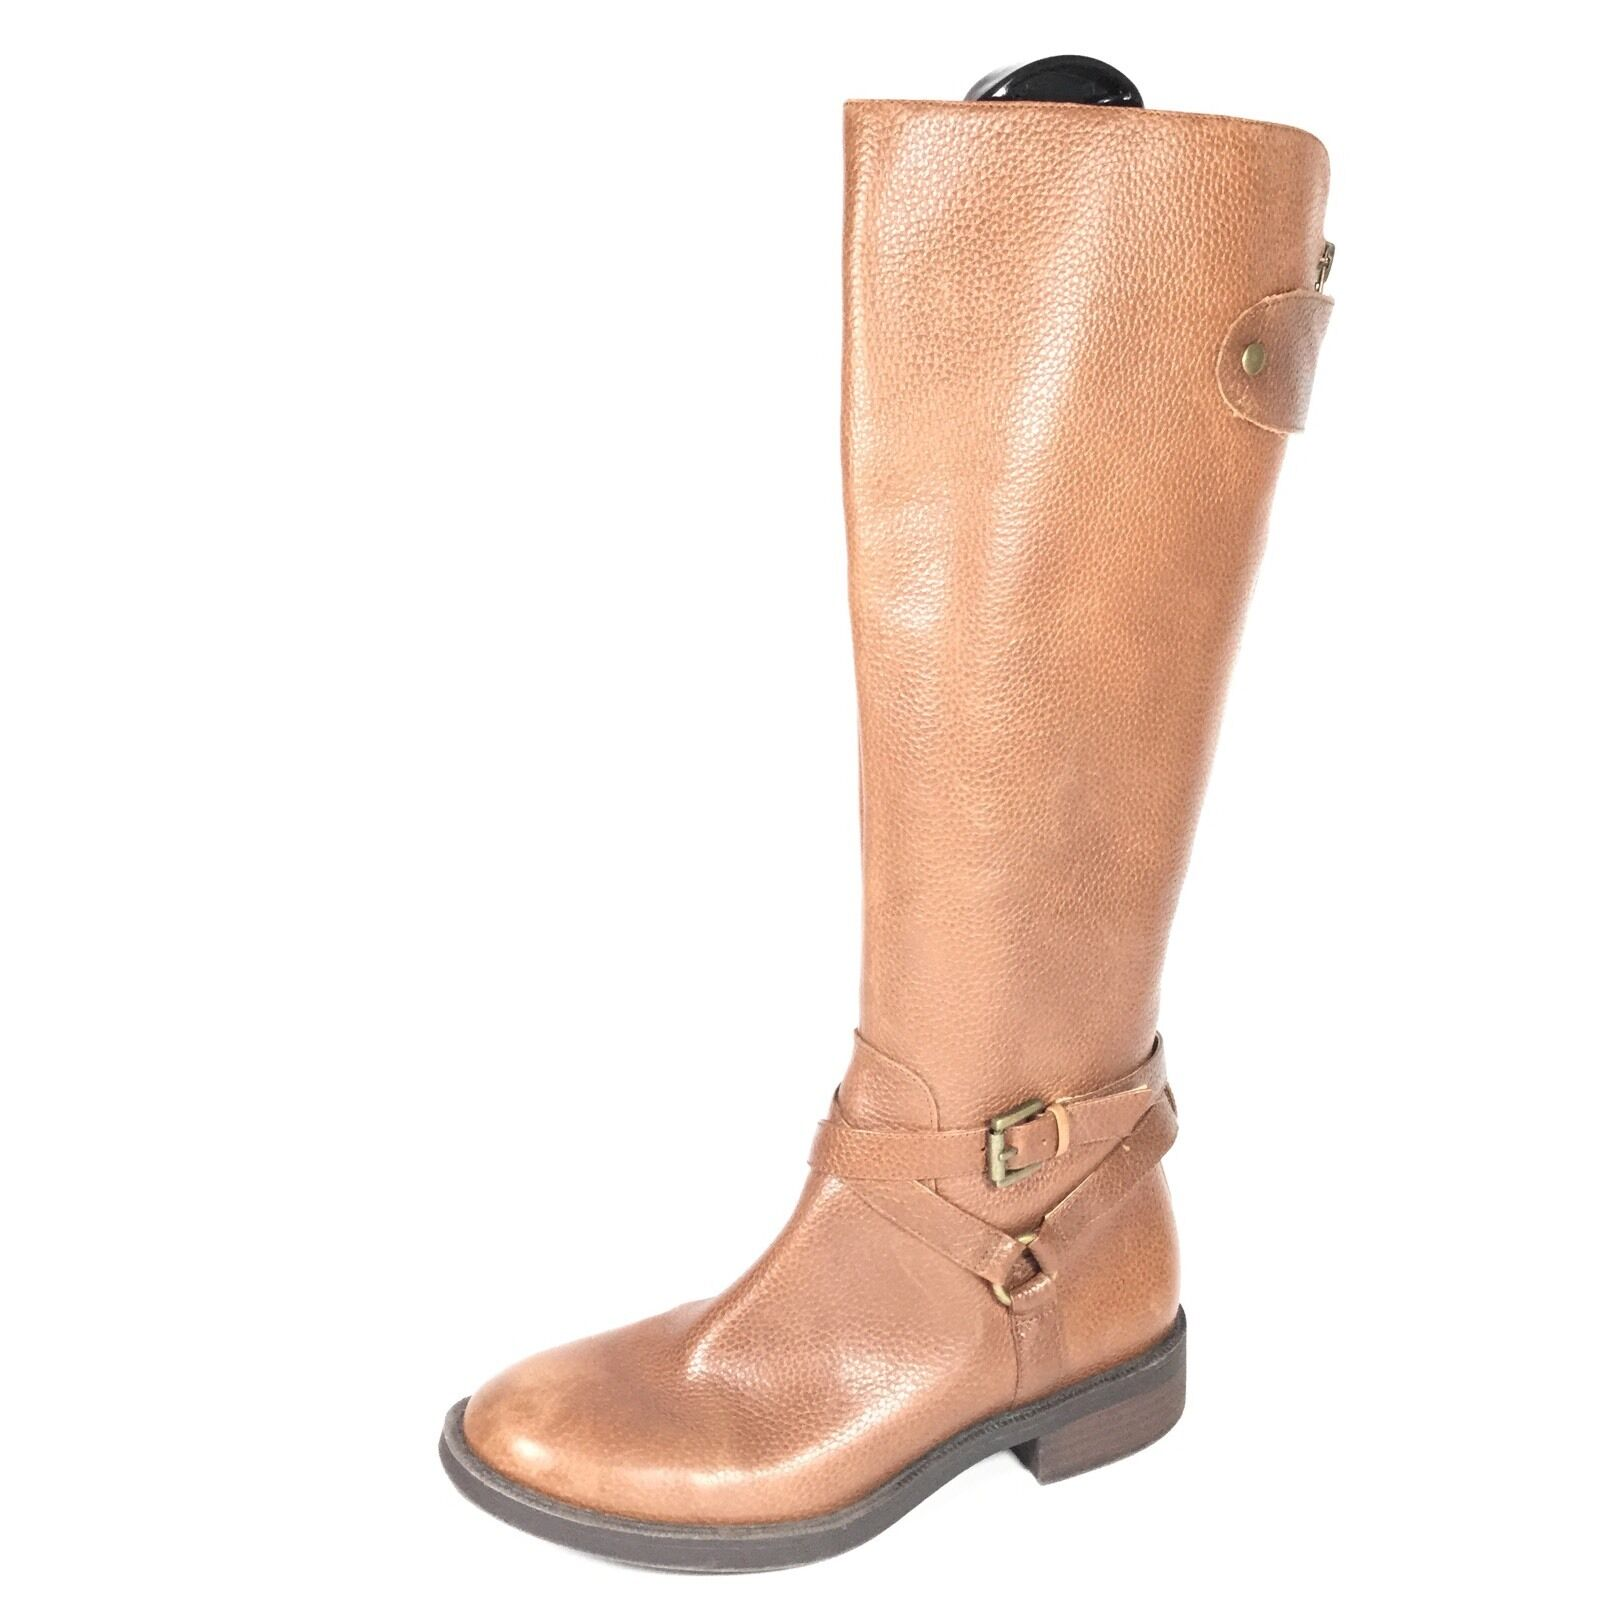 Enzo Angiolini Easaevon Women's Size 6.5 M Brown Leather Riding Boots